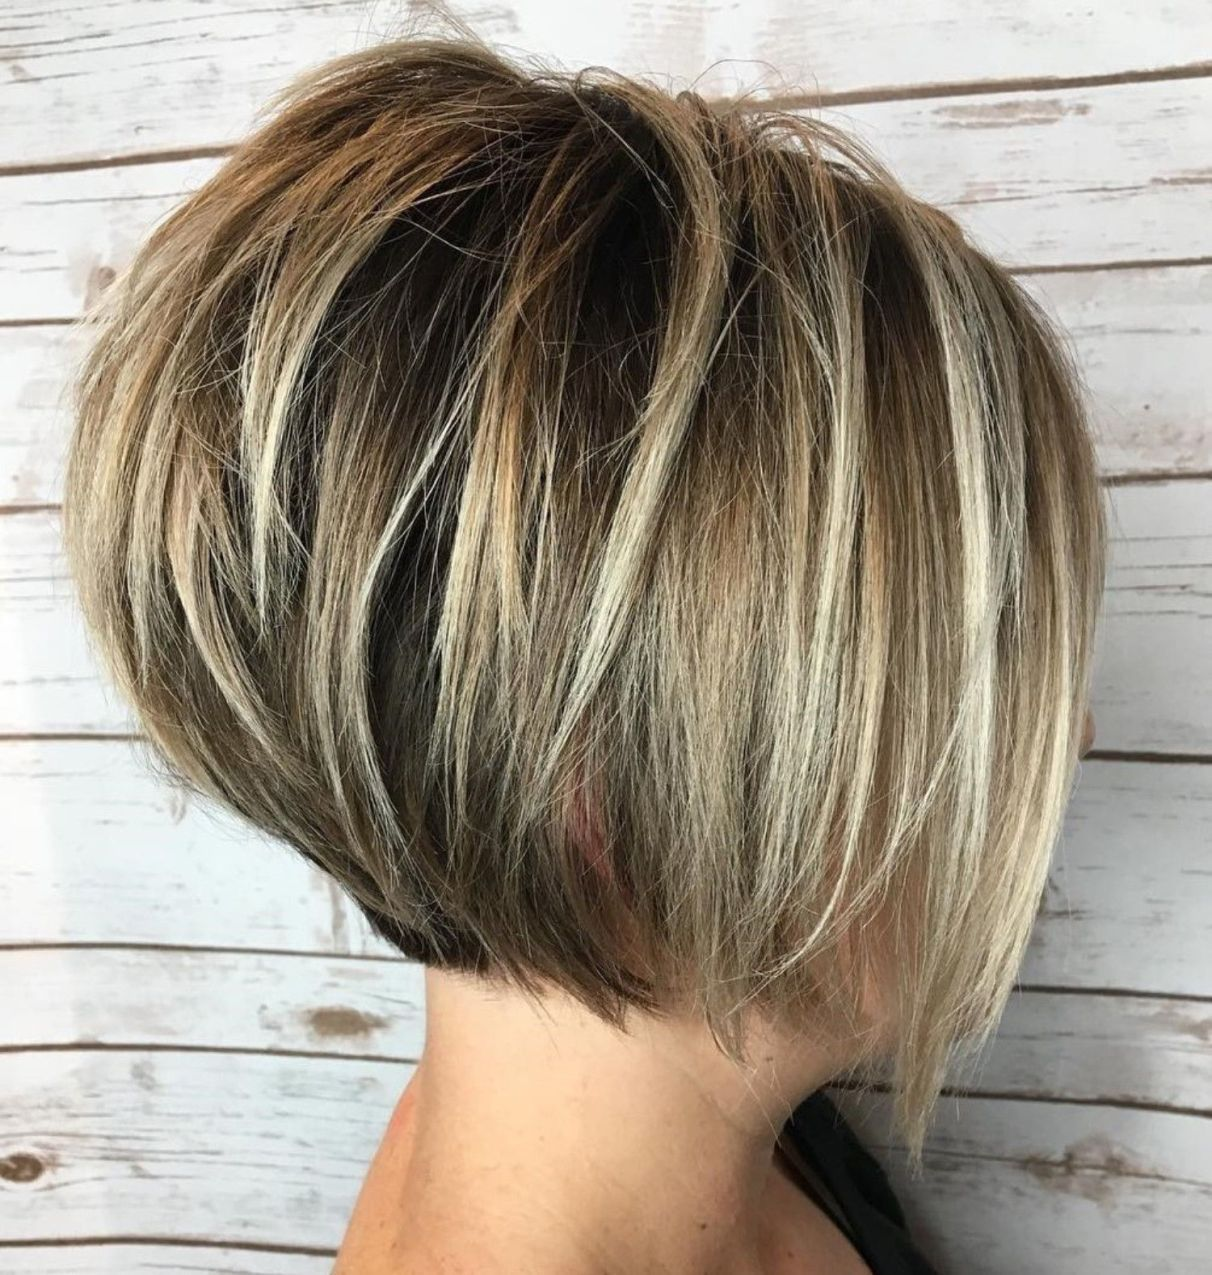 Short Layered Bob With Blonde Highlights Short Hair With Layers Hair Styles Layered Hair